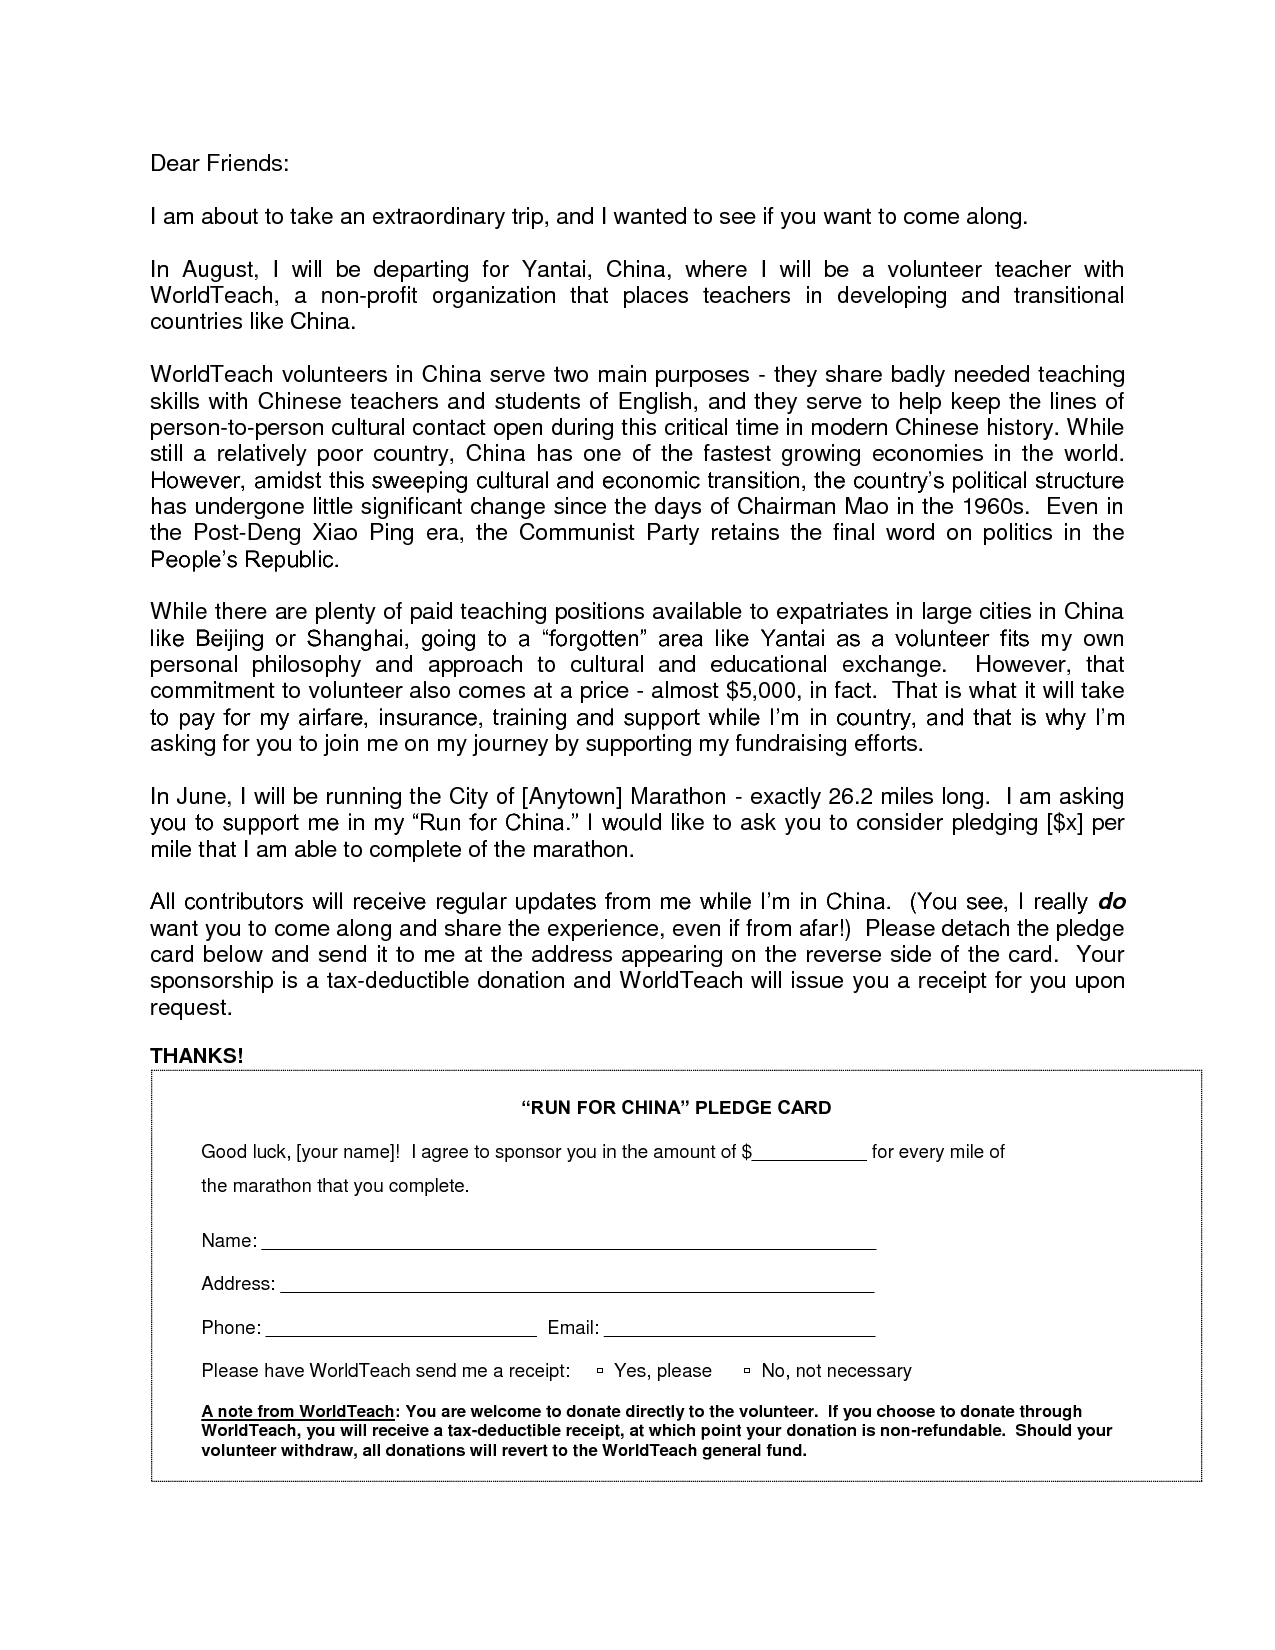 Donation Letter Template for Sports - How to Write A Letter asking to Volunteer Choice Image Letter